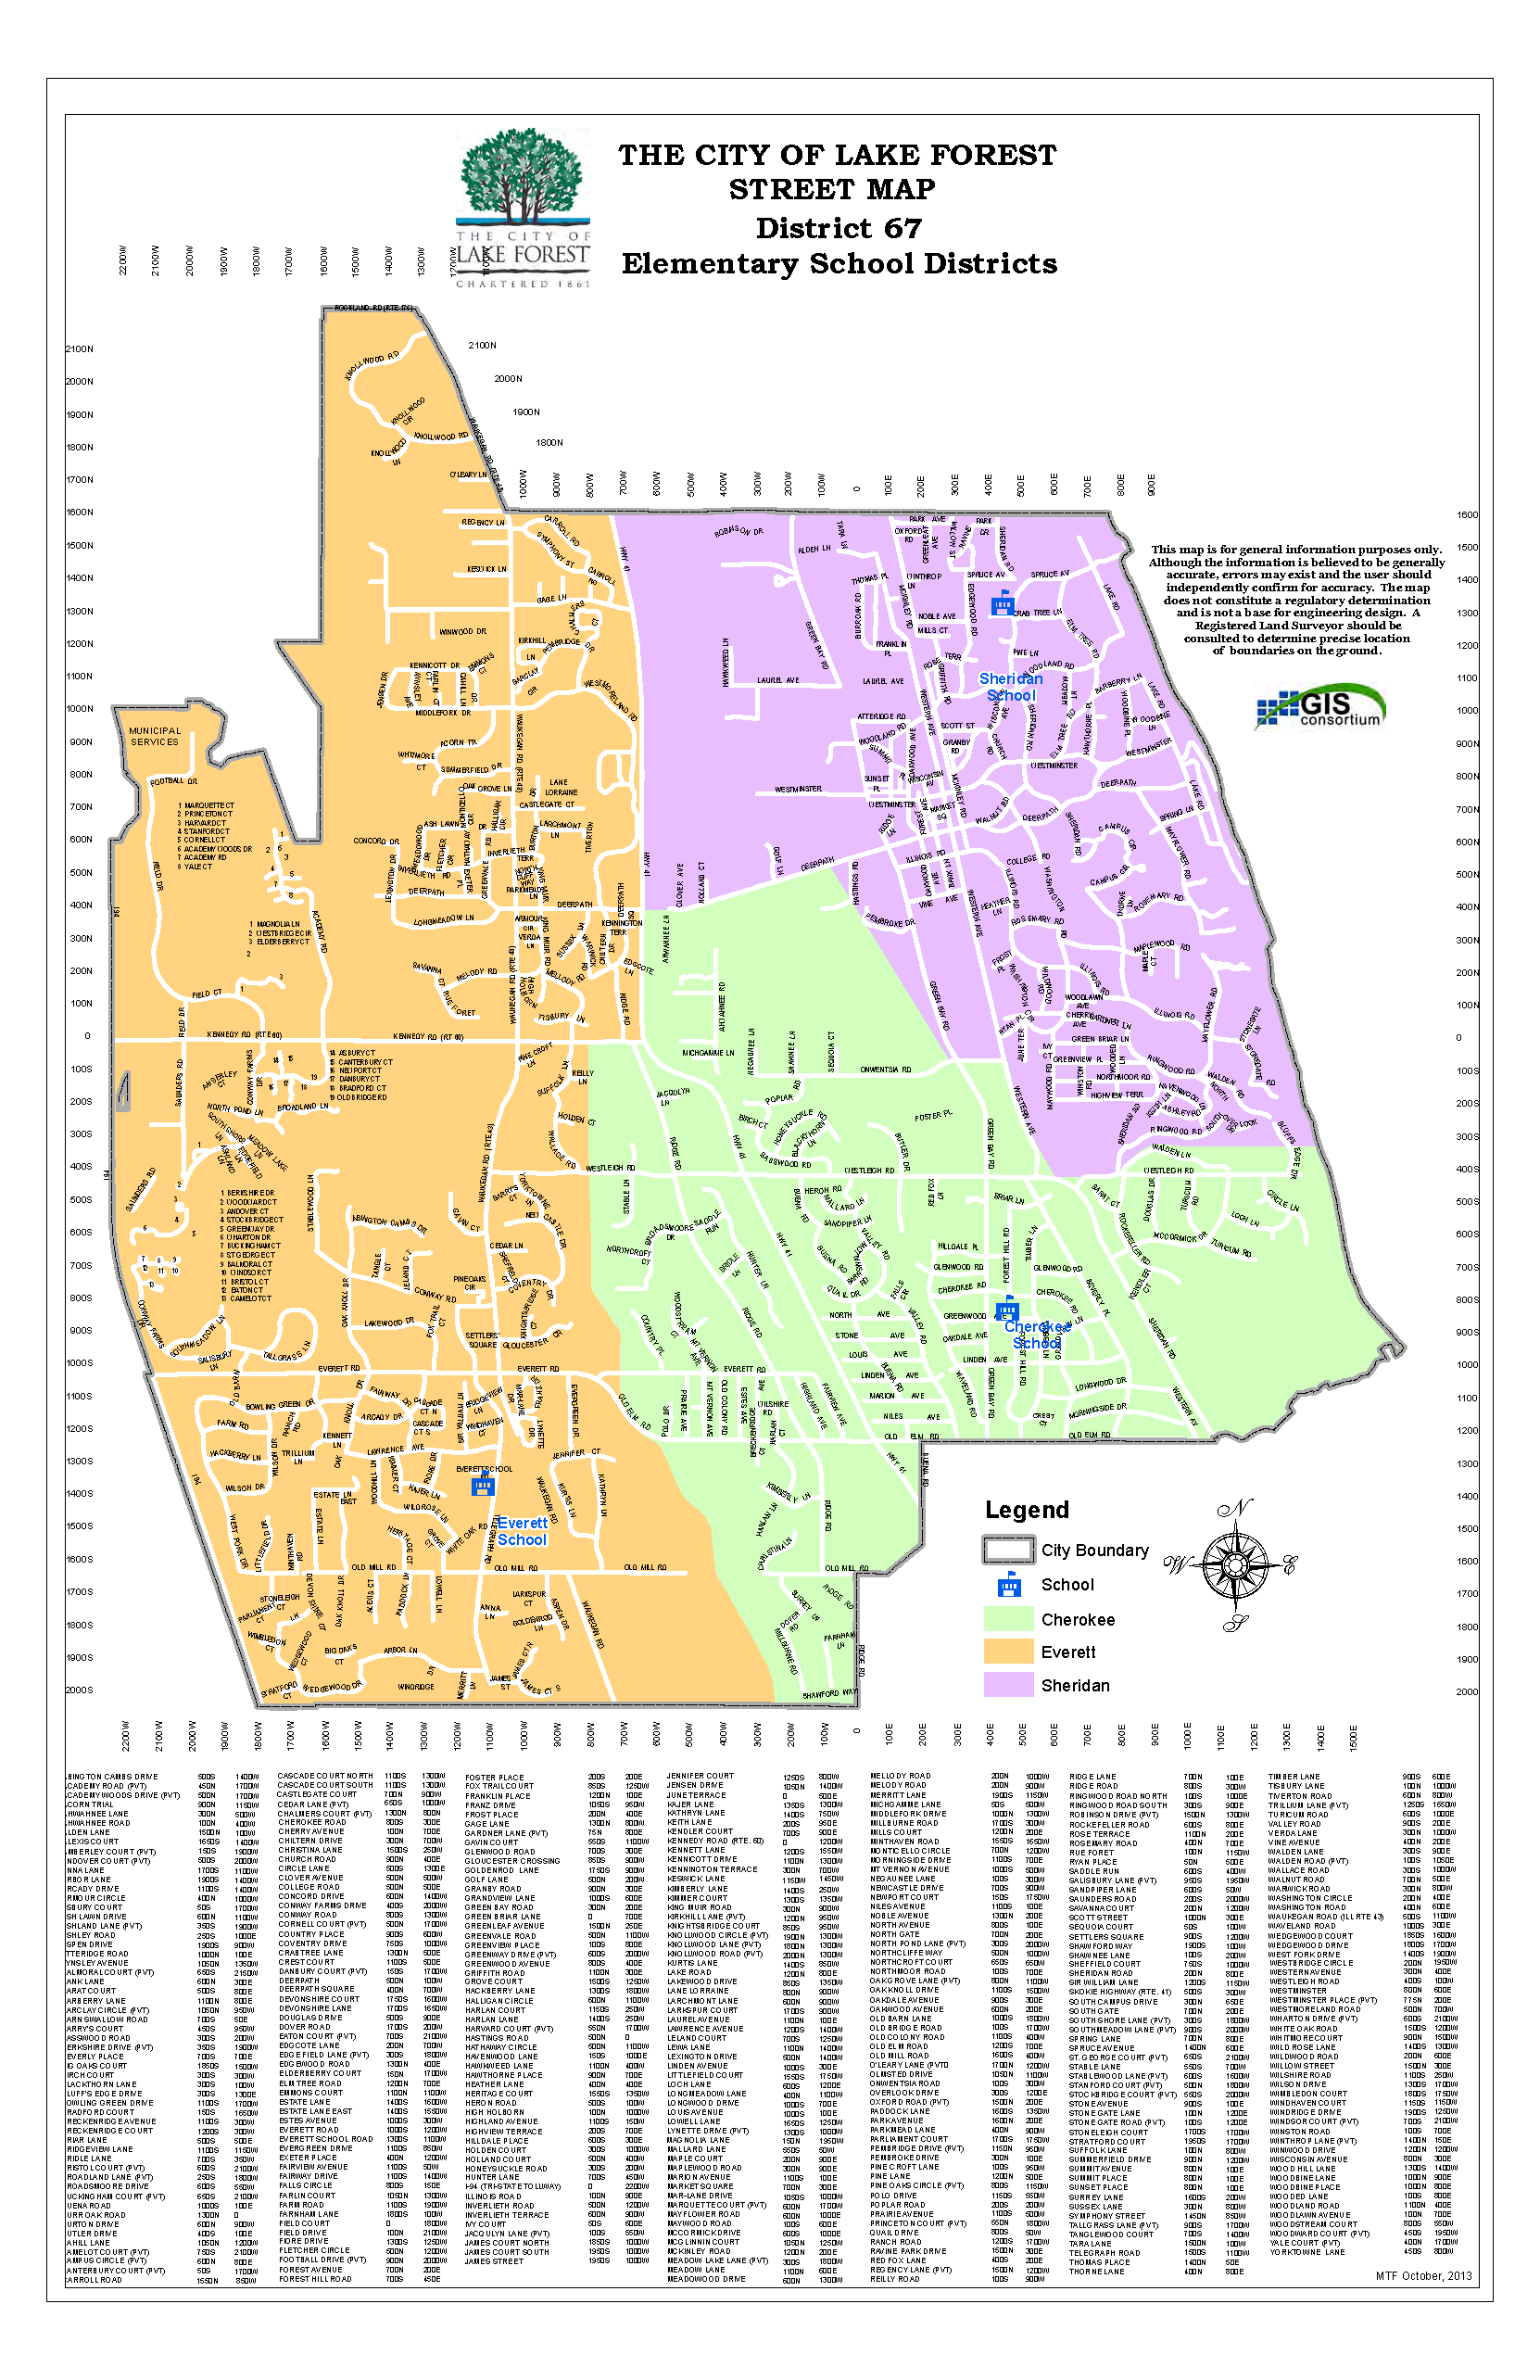 Boundary Map of Lake Forest School District 67